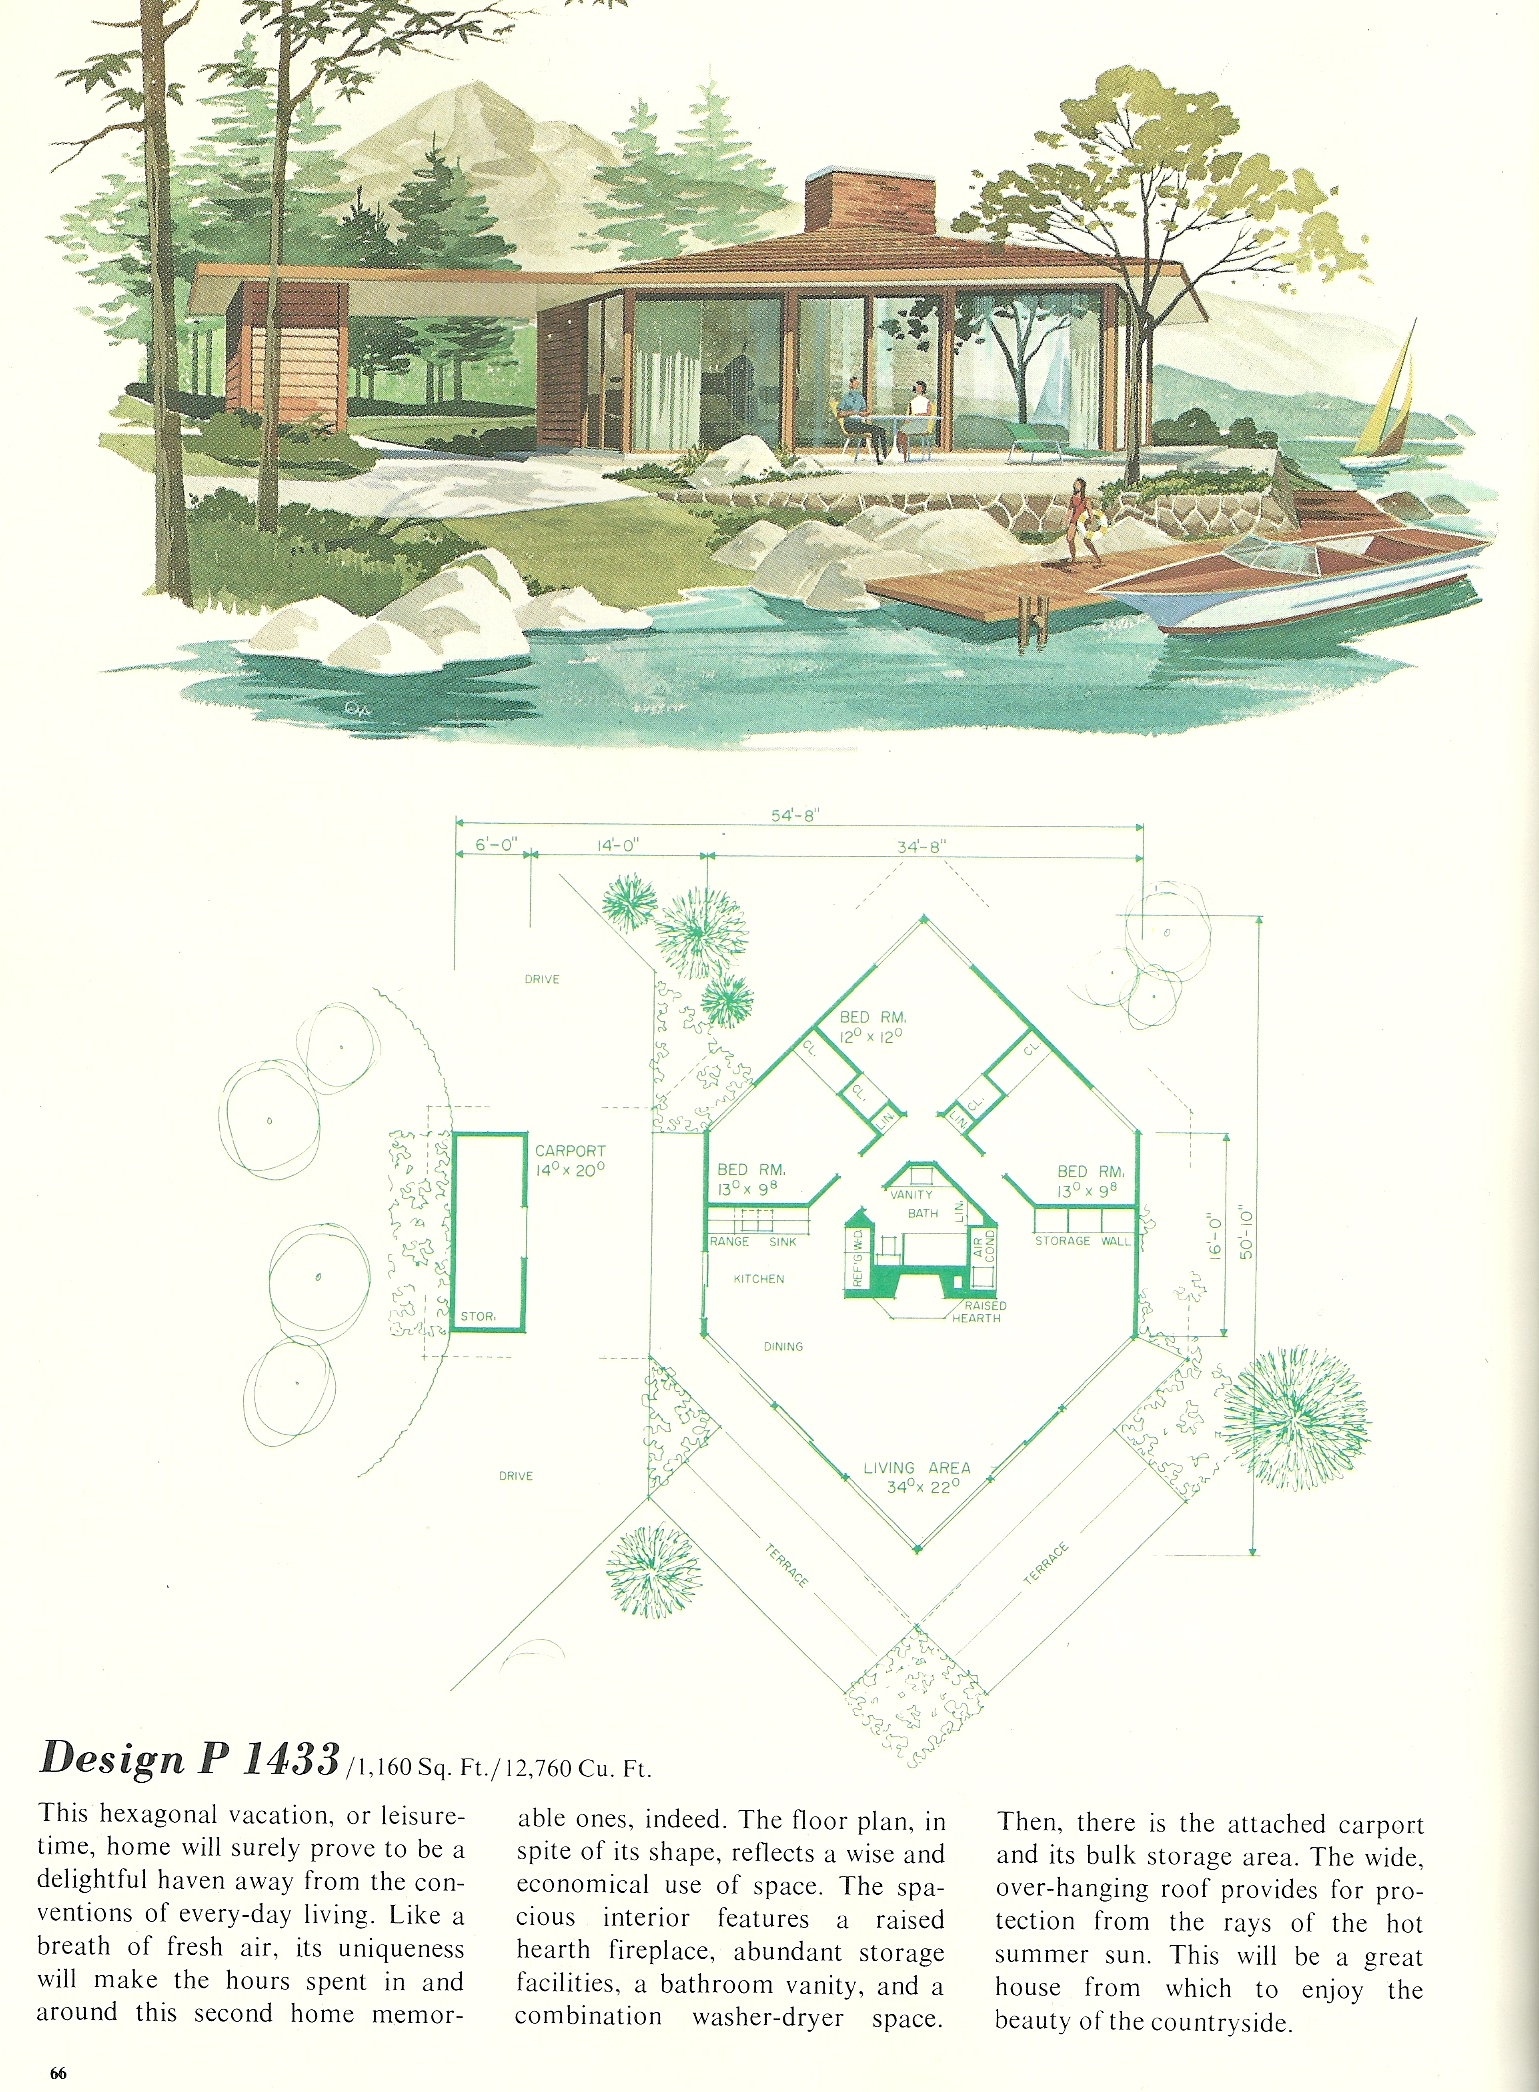 Vintage vacation home plans 1433 antique alter ego for Vacation home plans